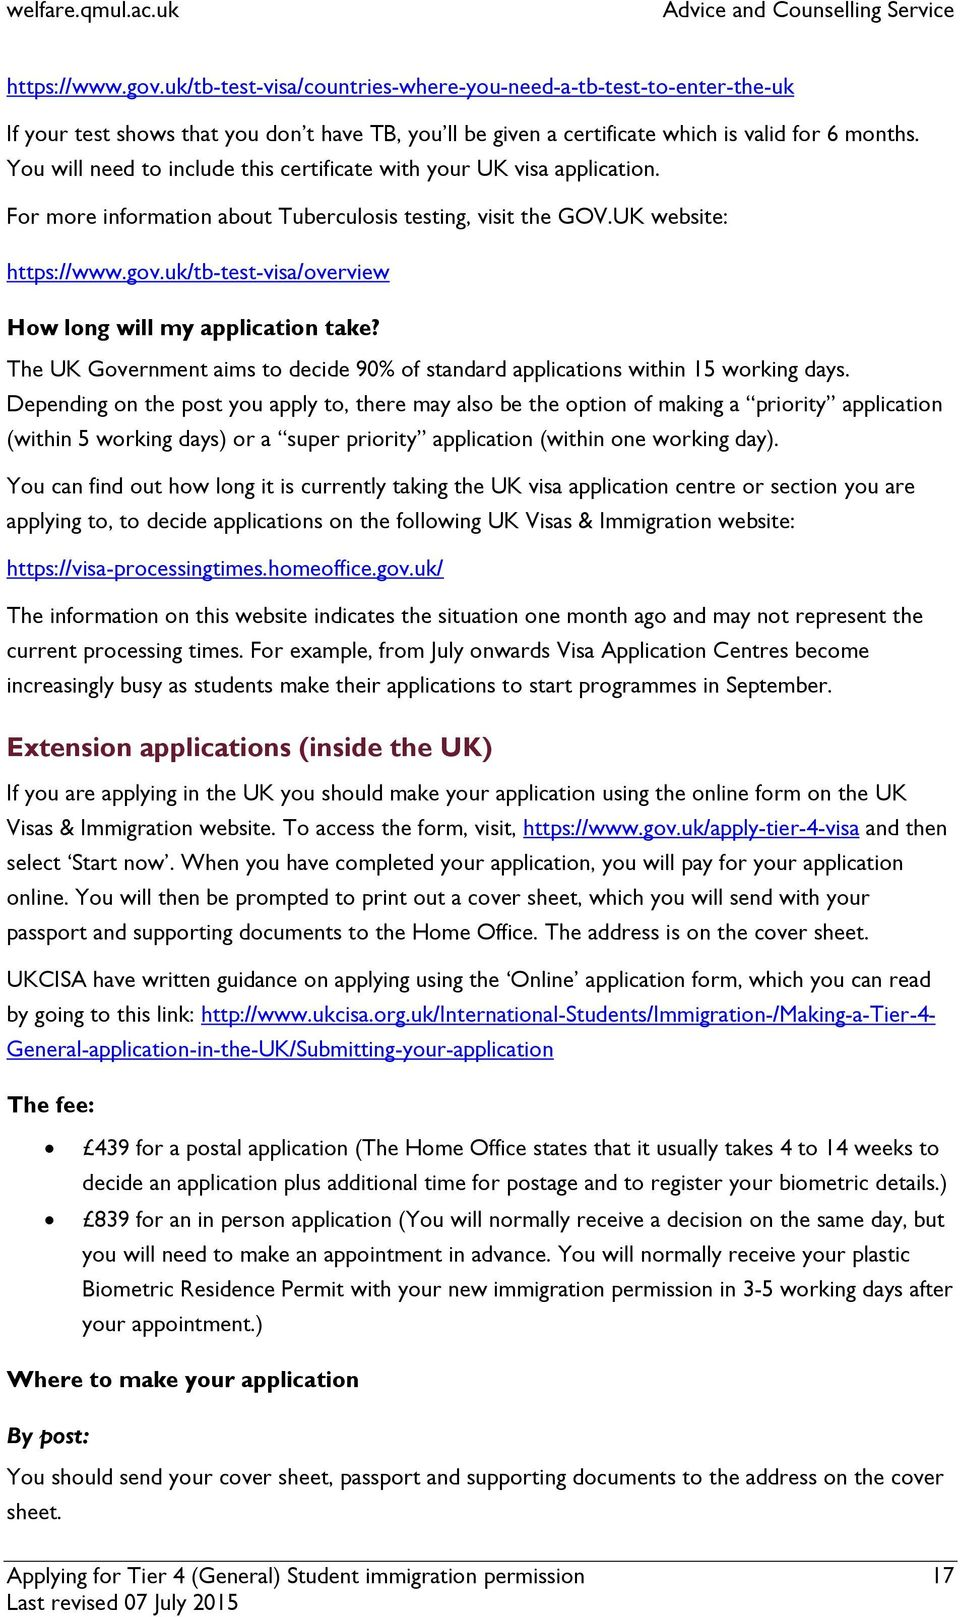 You will need to include this certificate with your UK visa application. For more information about Tuberculosis testing, visit the GOV.UK website: https://www.gov.